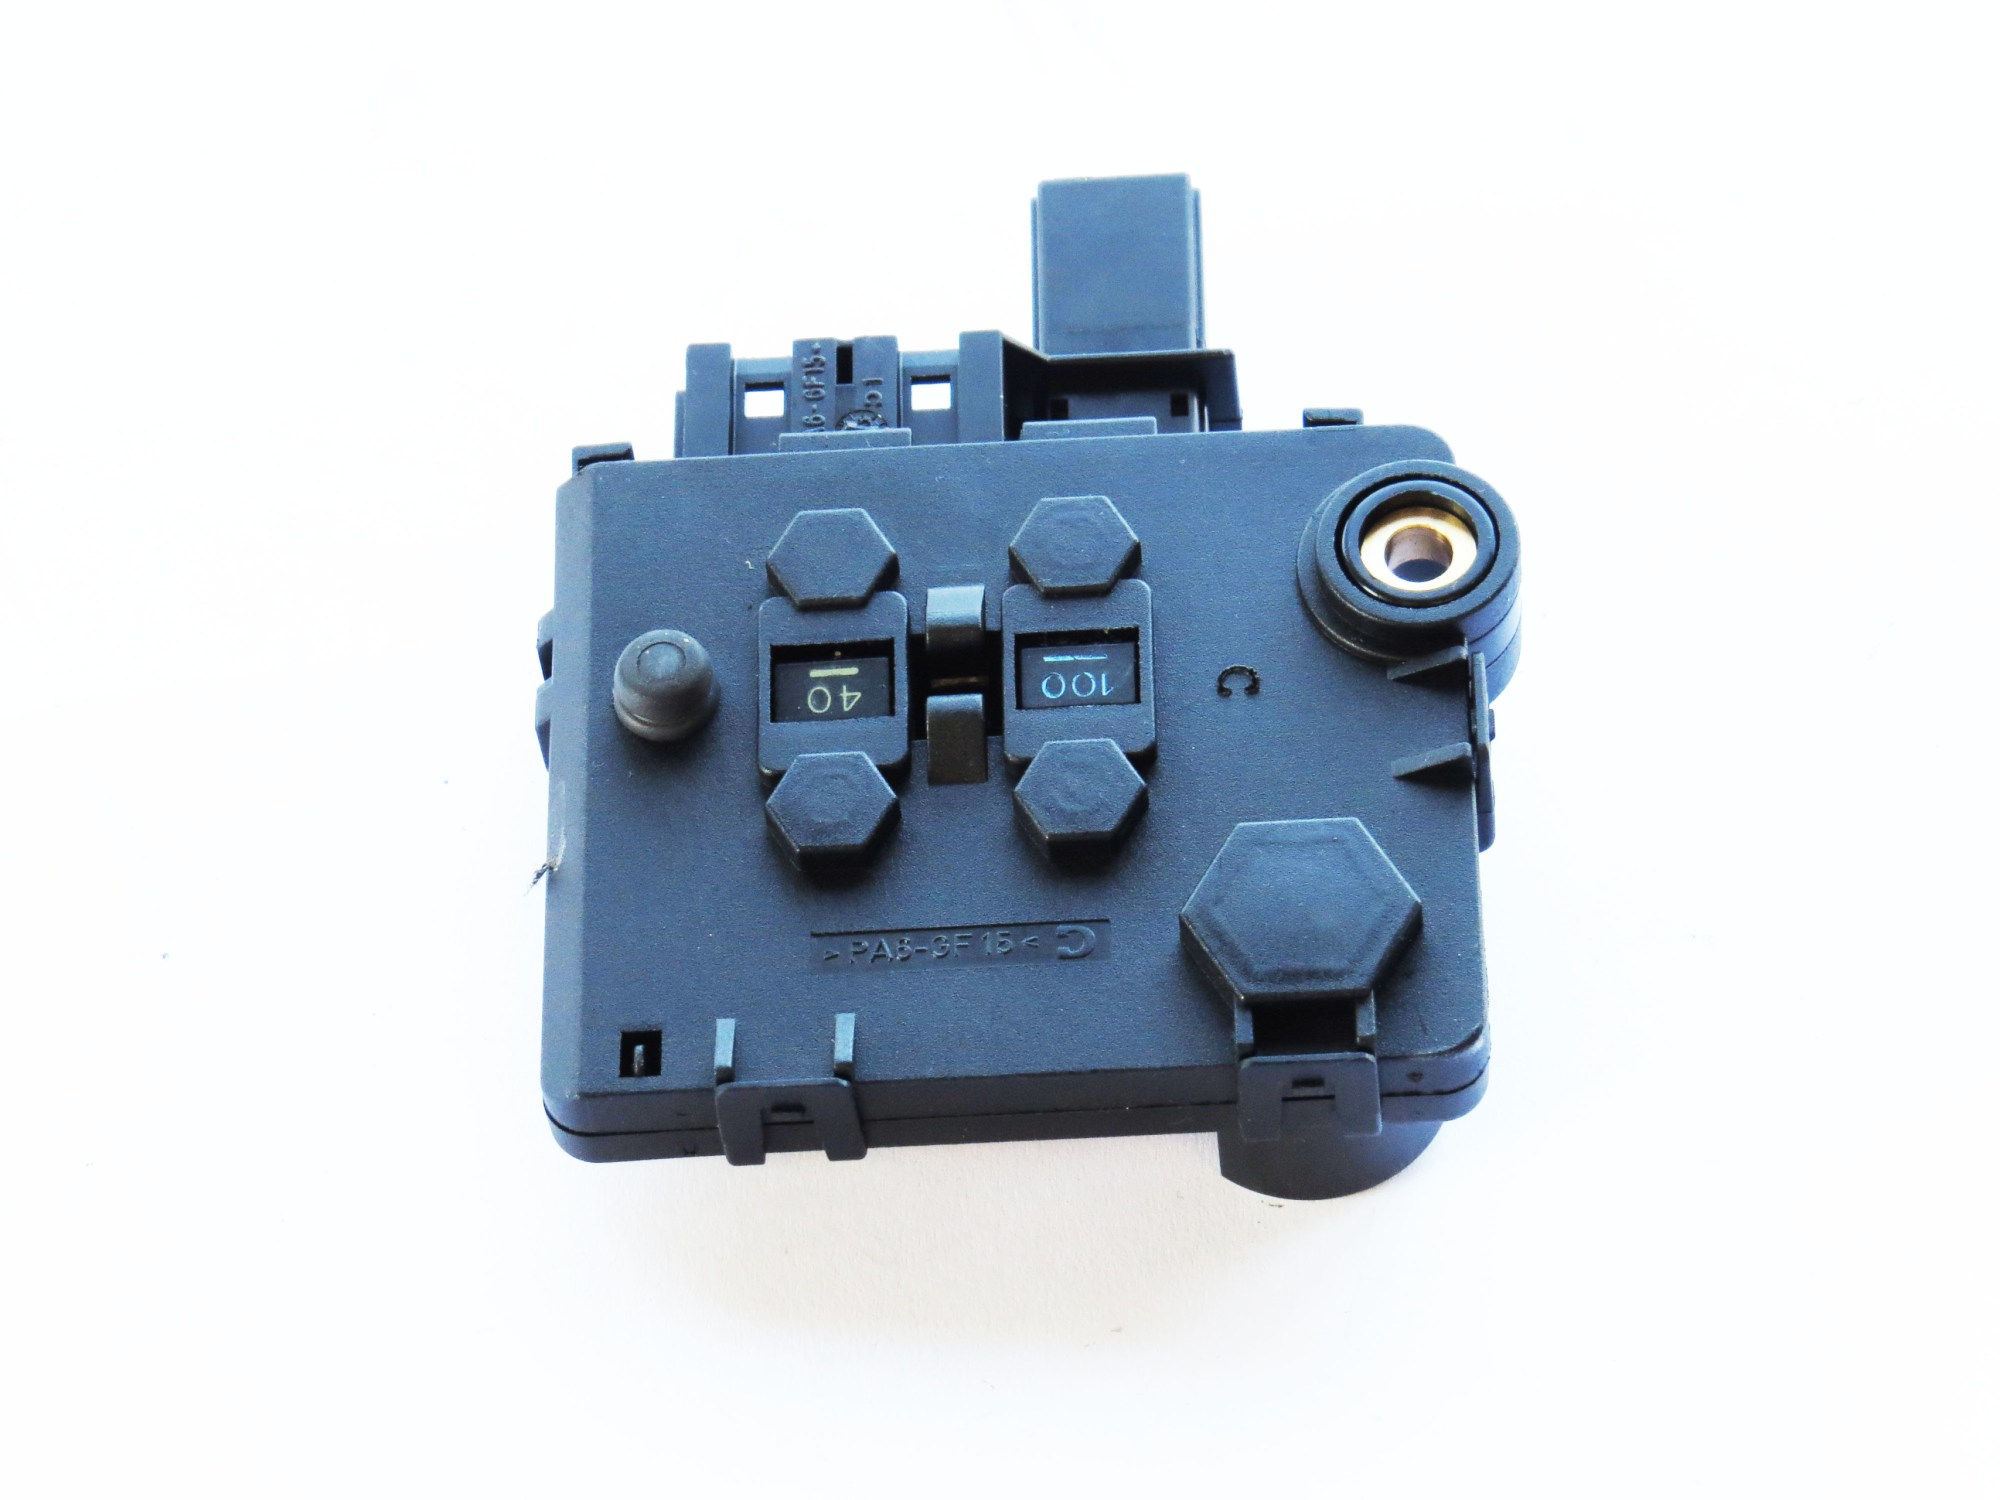 hight resolution of 2000 mercede s500 rear fuse box